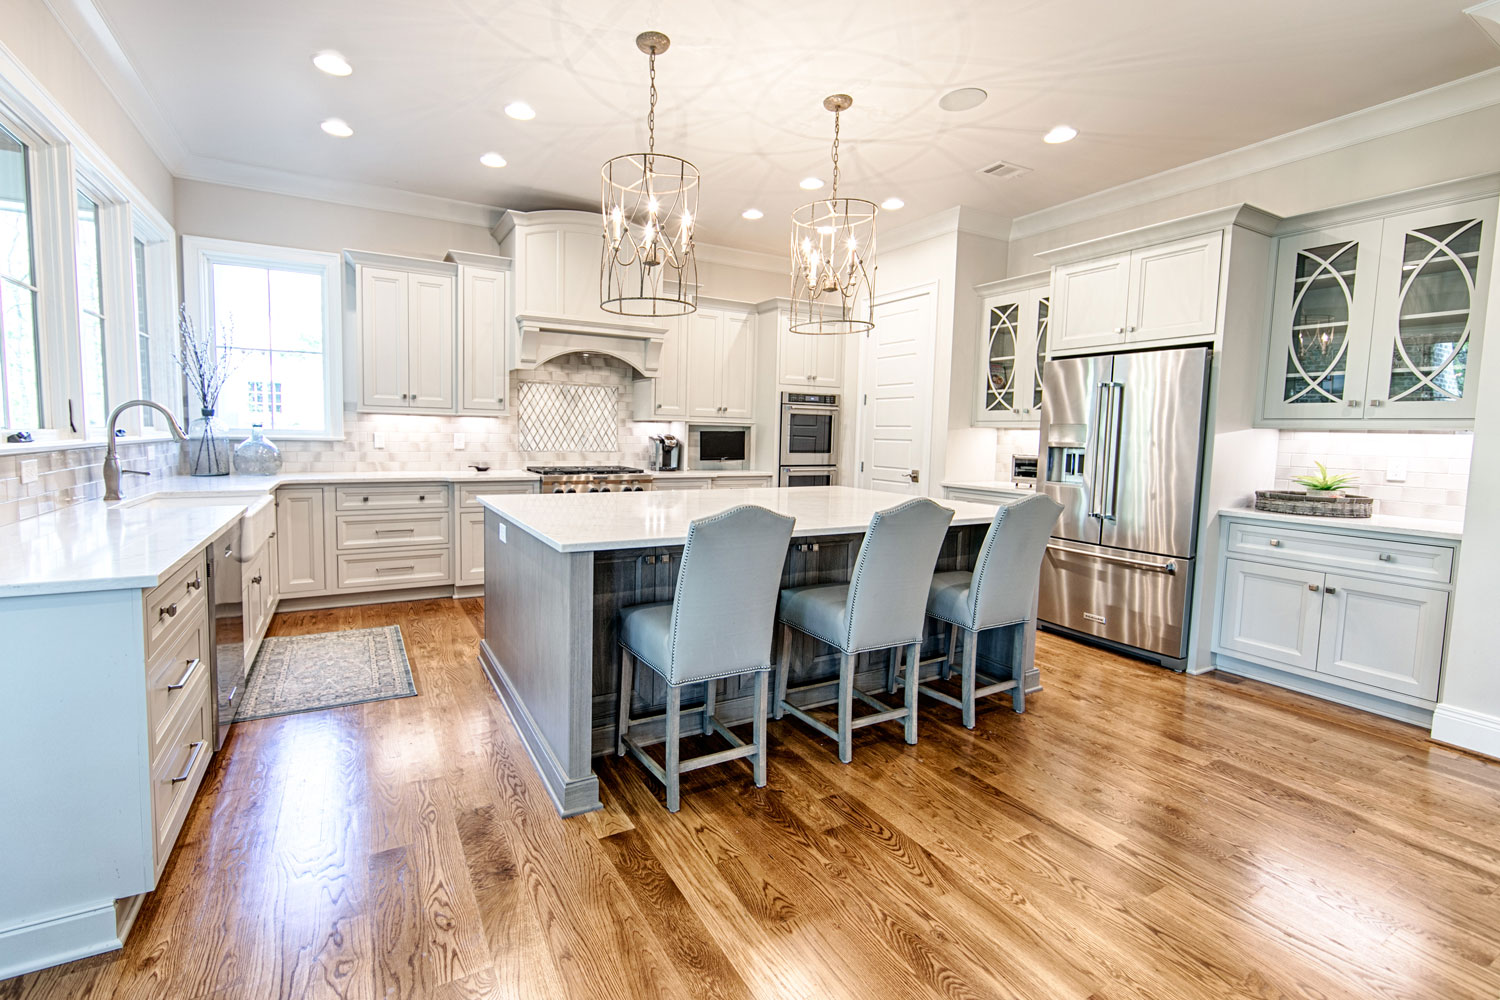 This new construction transitional kitchen has wide plank oak floors and Sierra Pacifc Windows